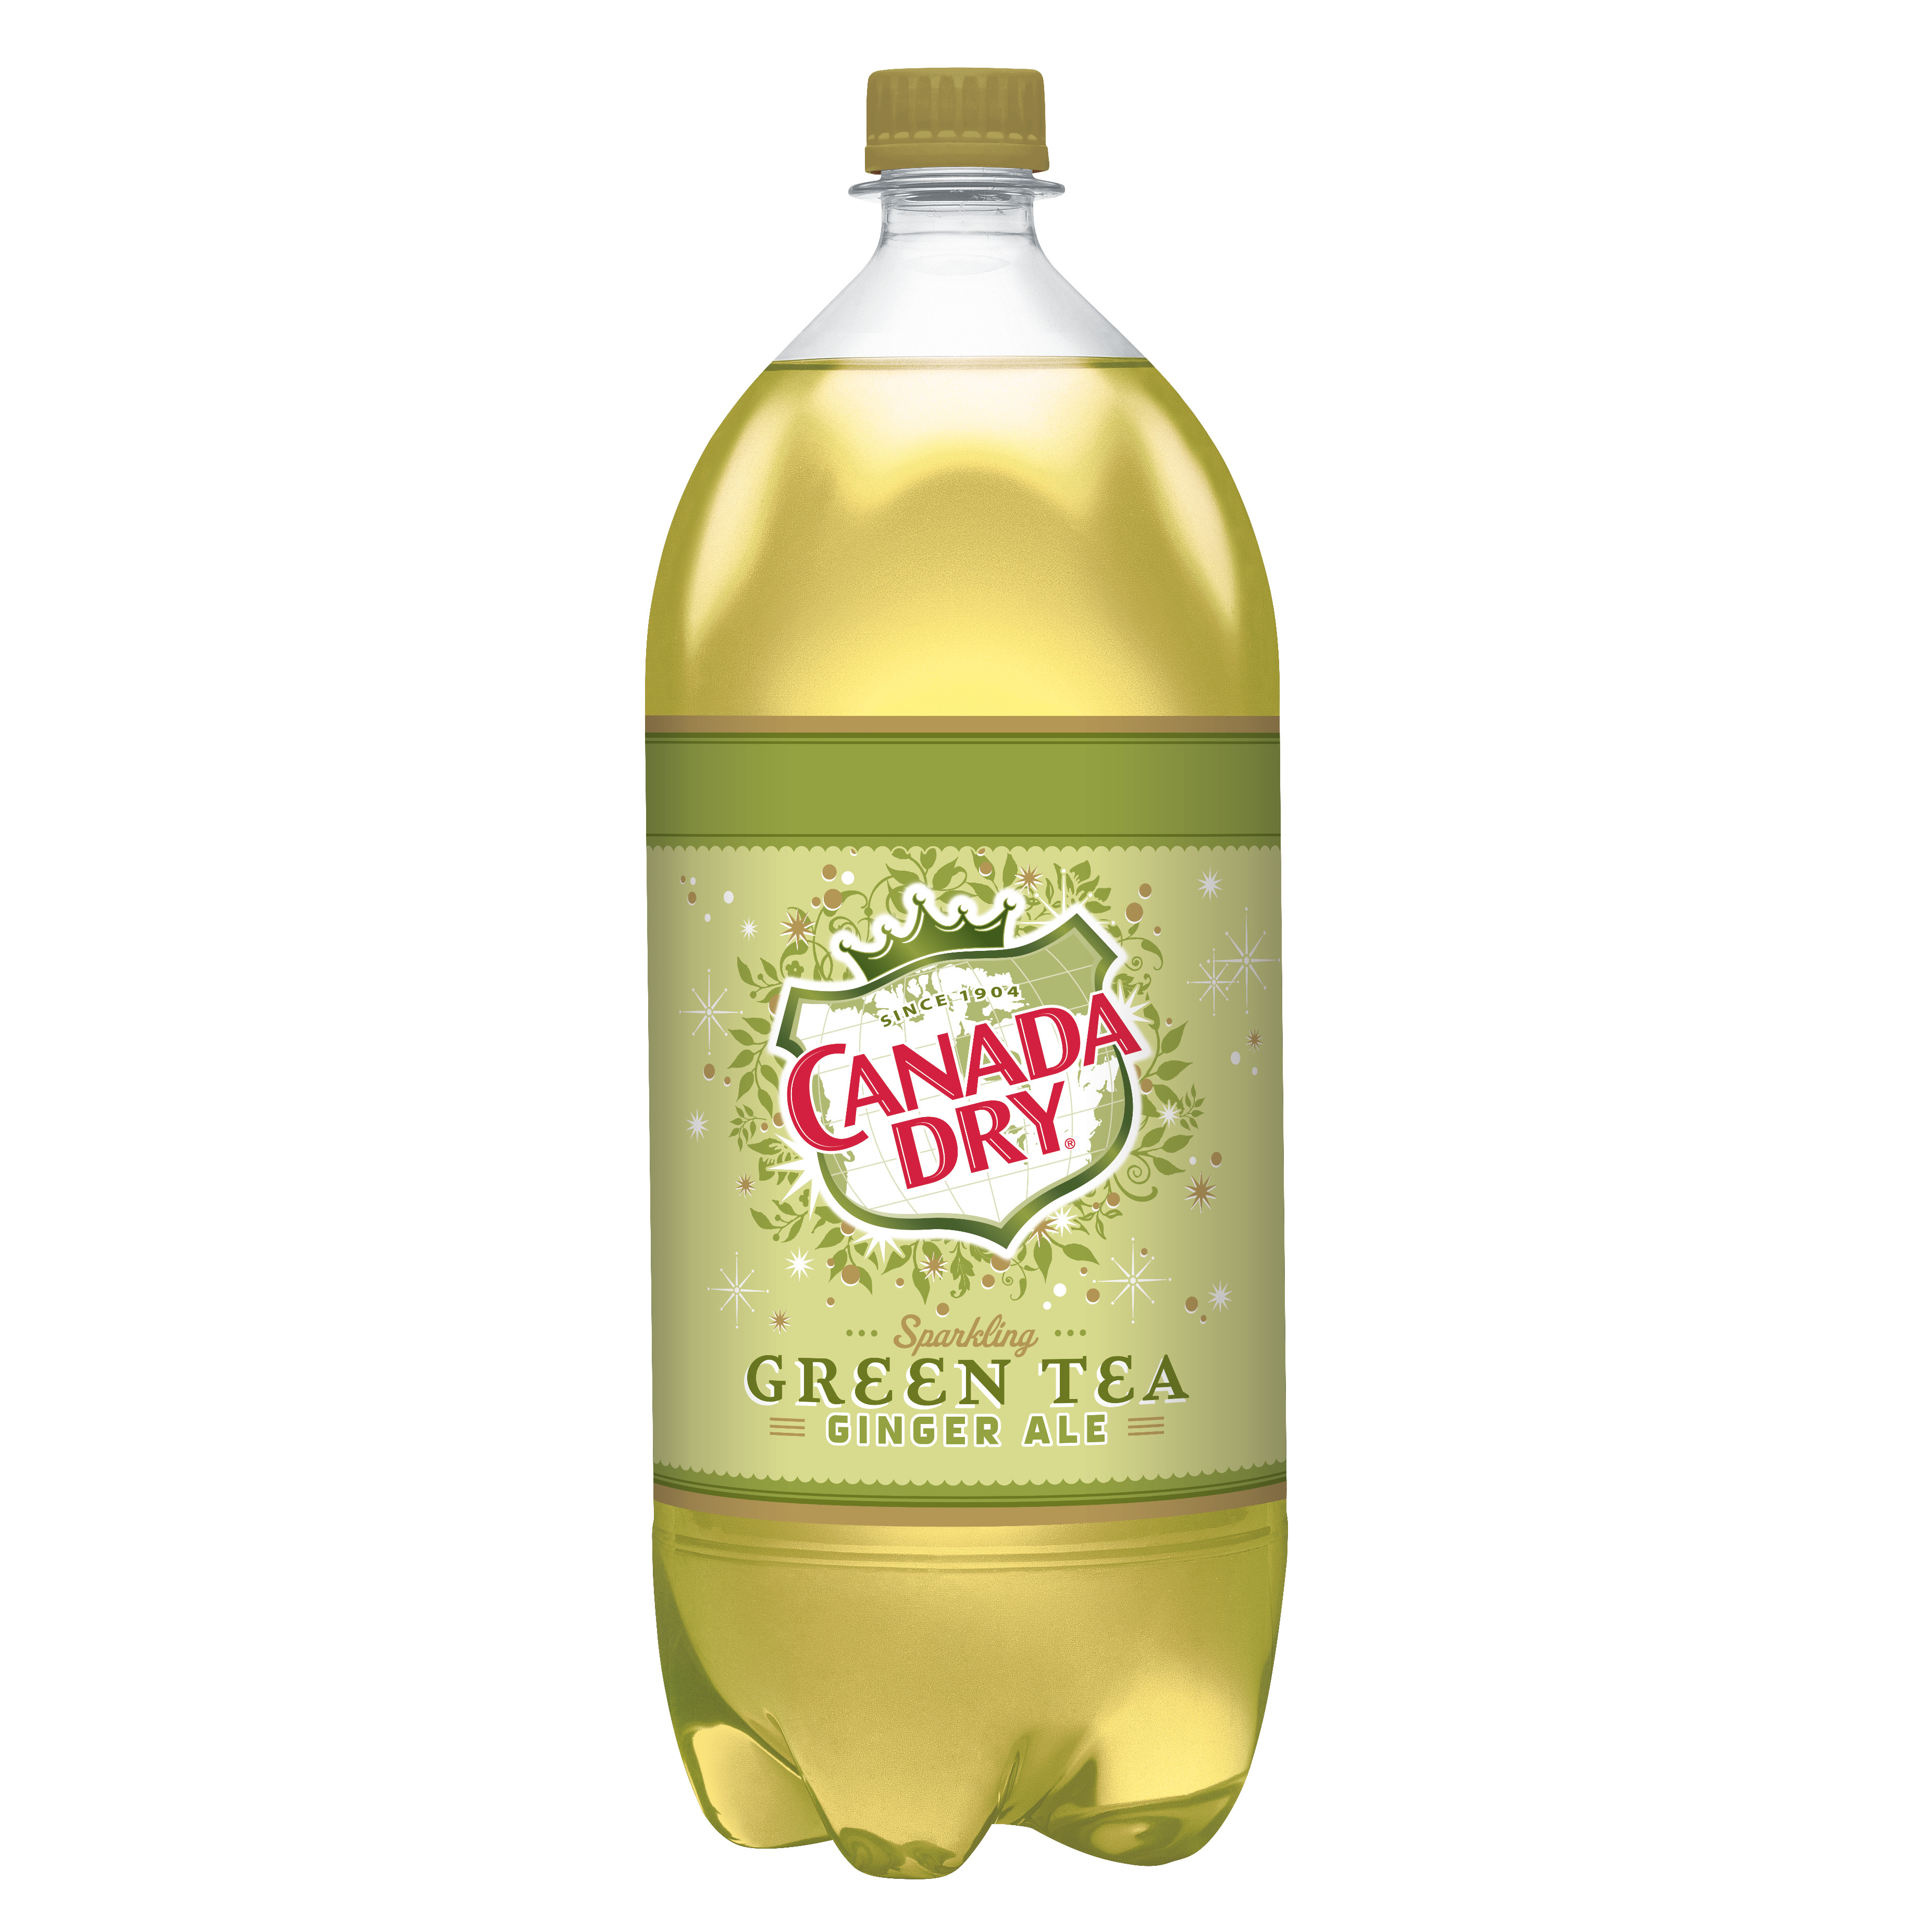 Canada Dry Green Tea Ginger Ale, 2 L